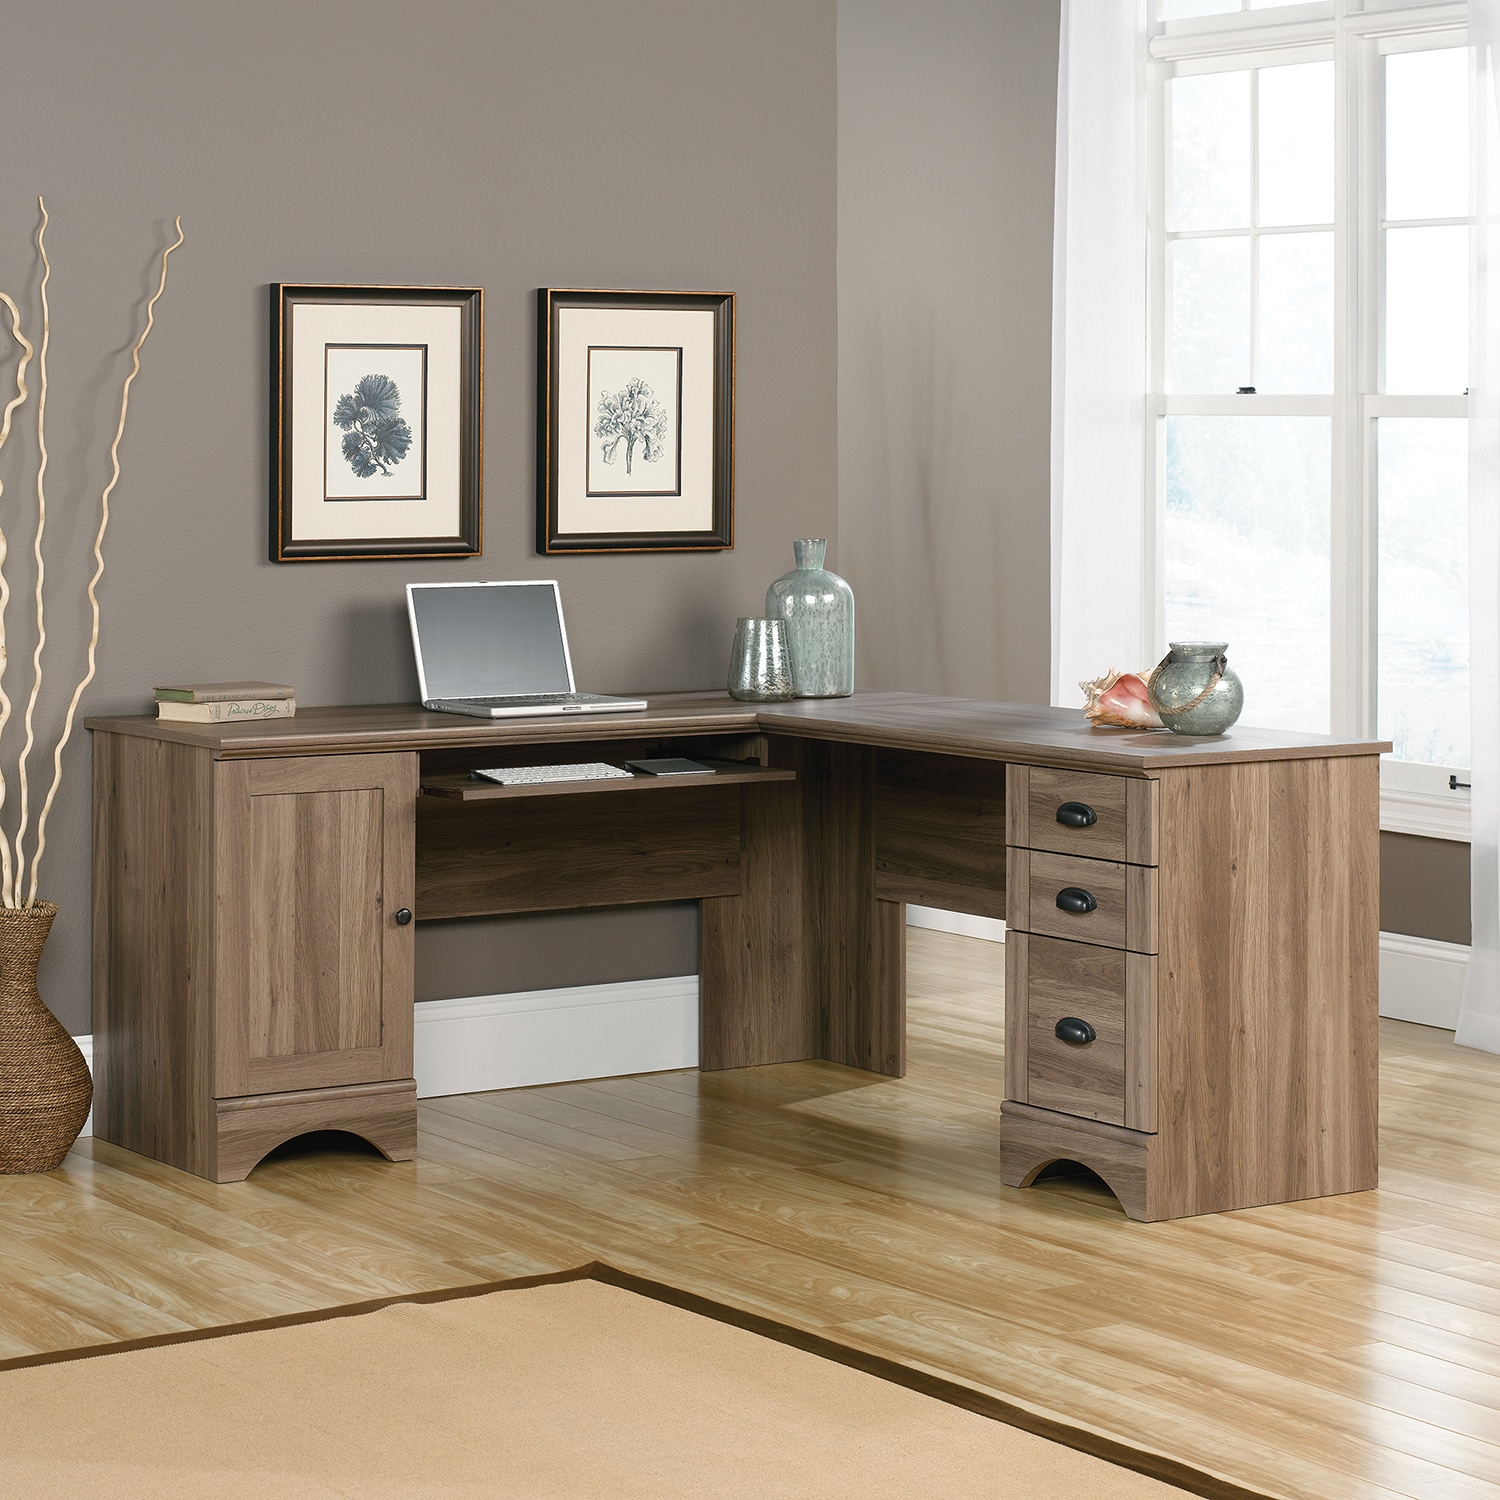 Harbor view corner desk salt oak the brick Show home furniture hours